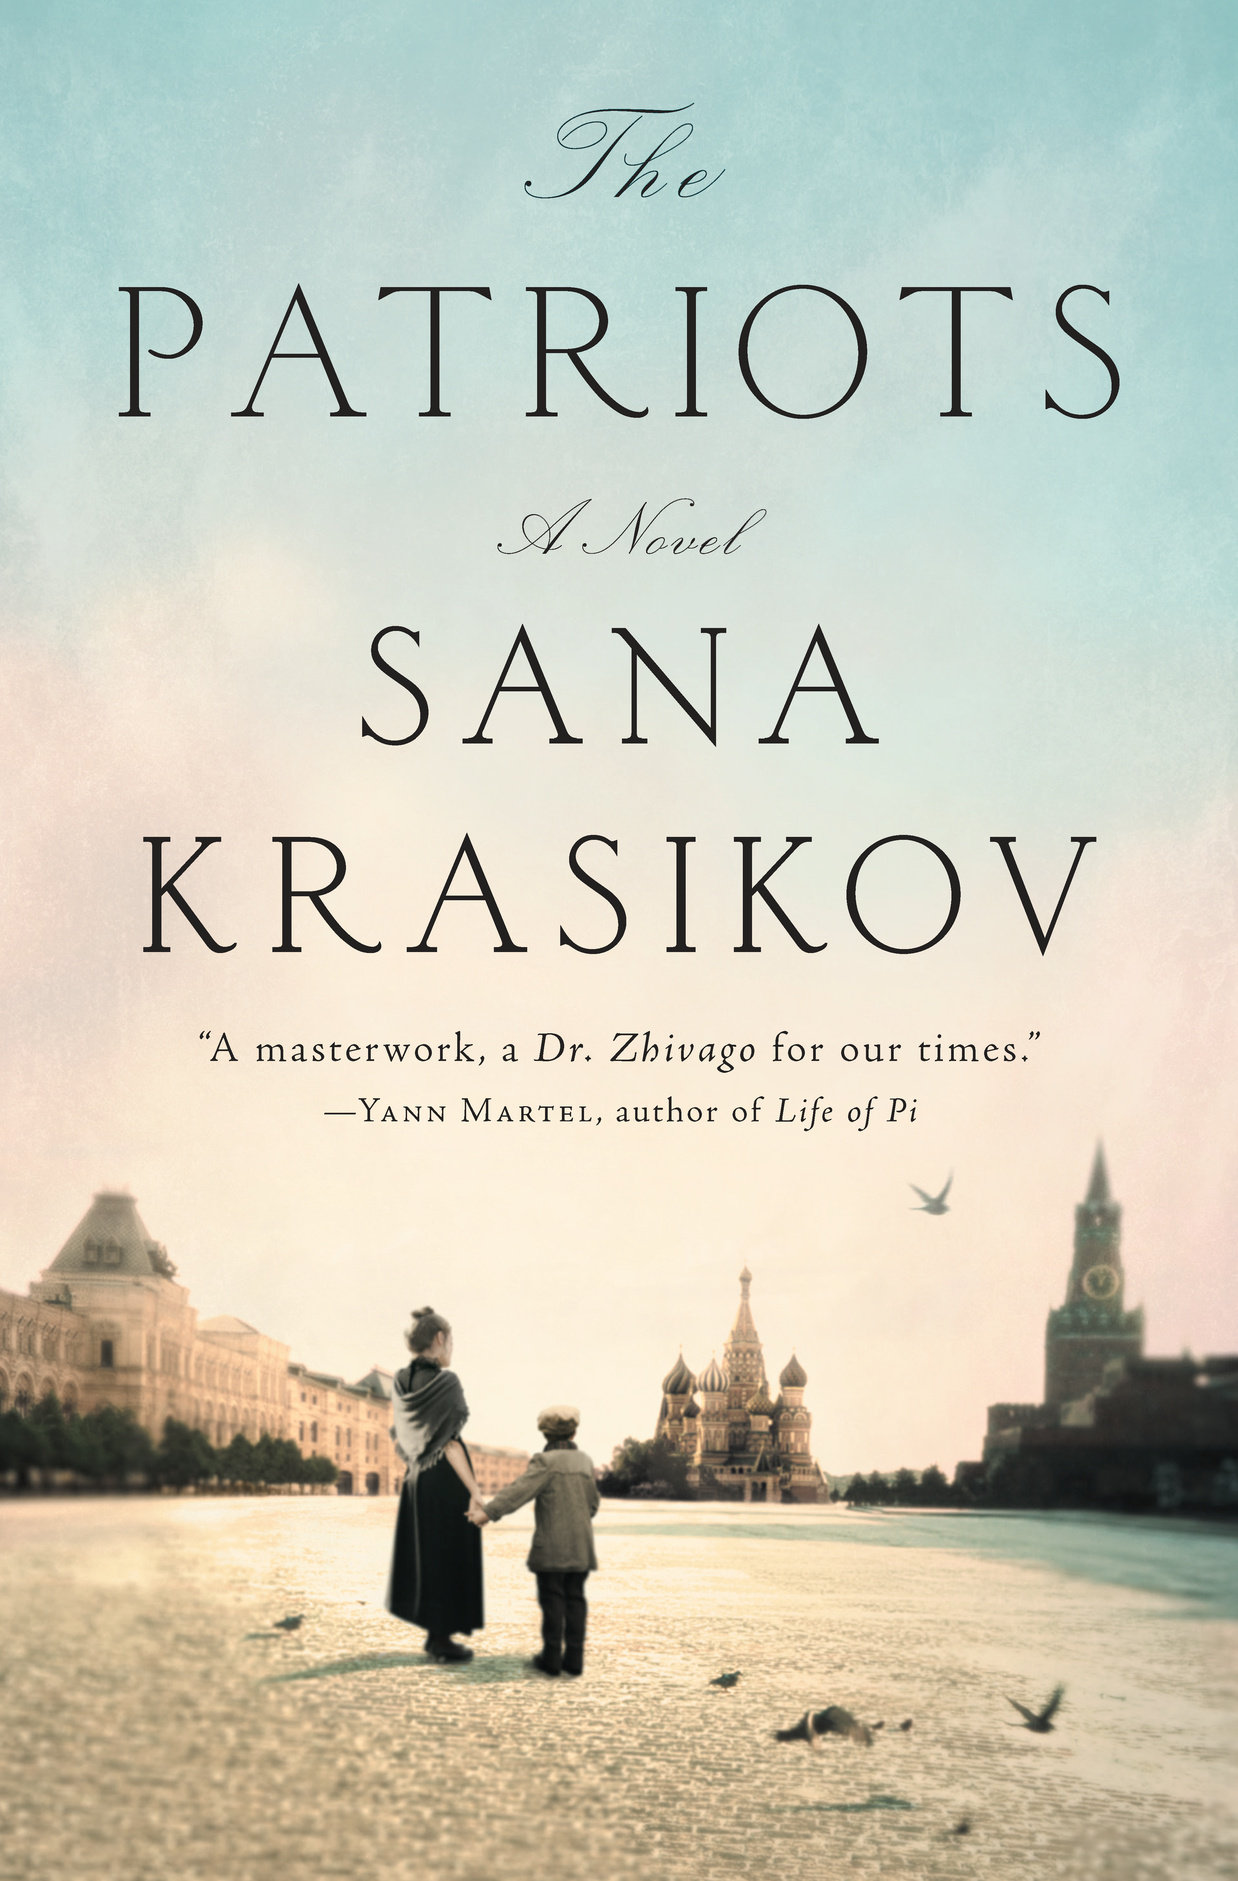 http://images.randomhouse.com/cover/m/9780385524414